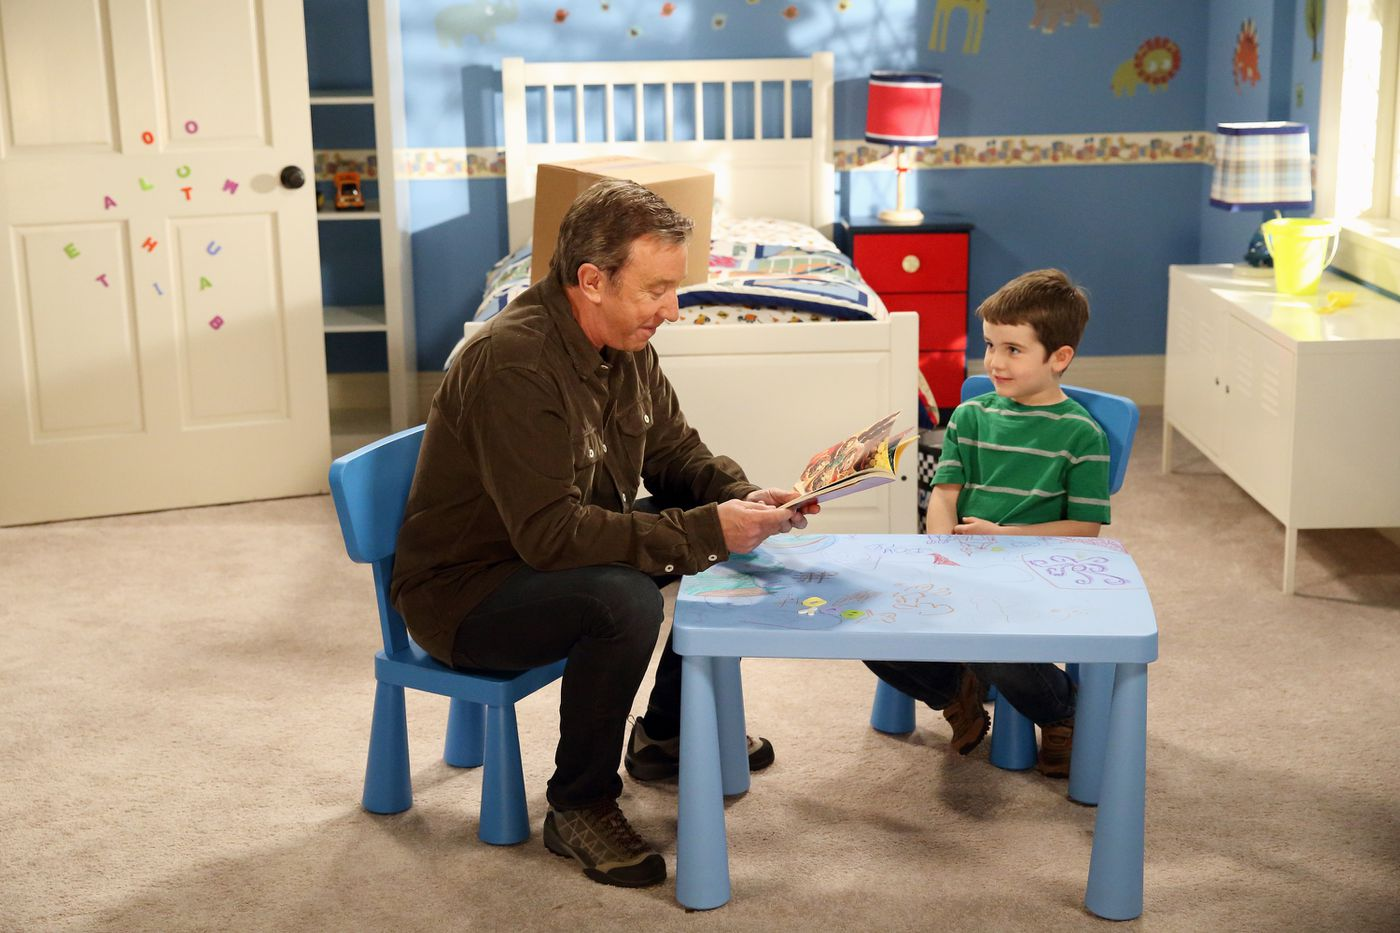 Amazing Last Man Standing Review Tim Allens Sitcom Is Back On Fox Download Free Architecture Designs Scobabritishbridgeorg